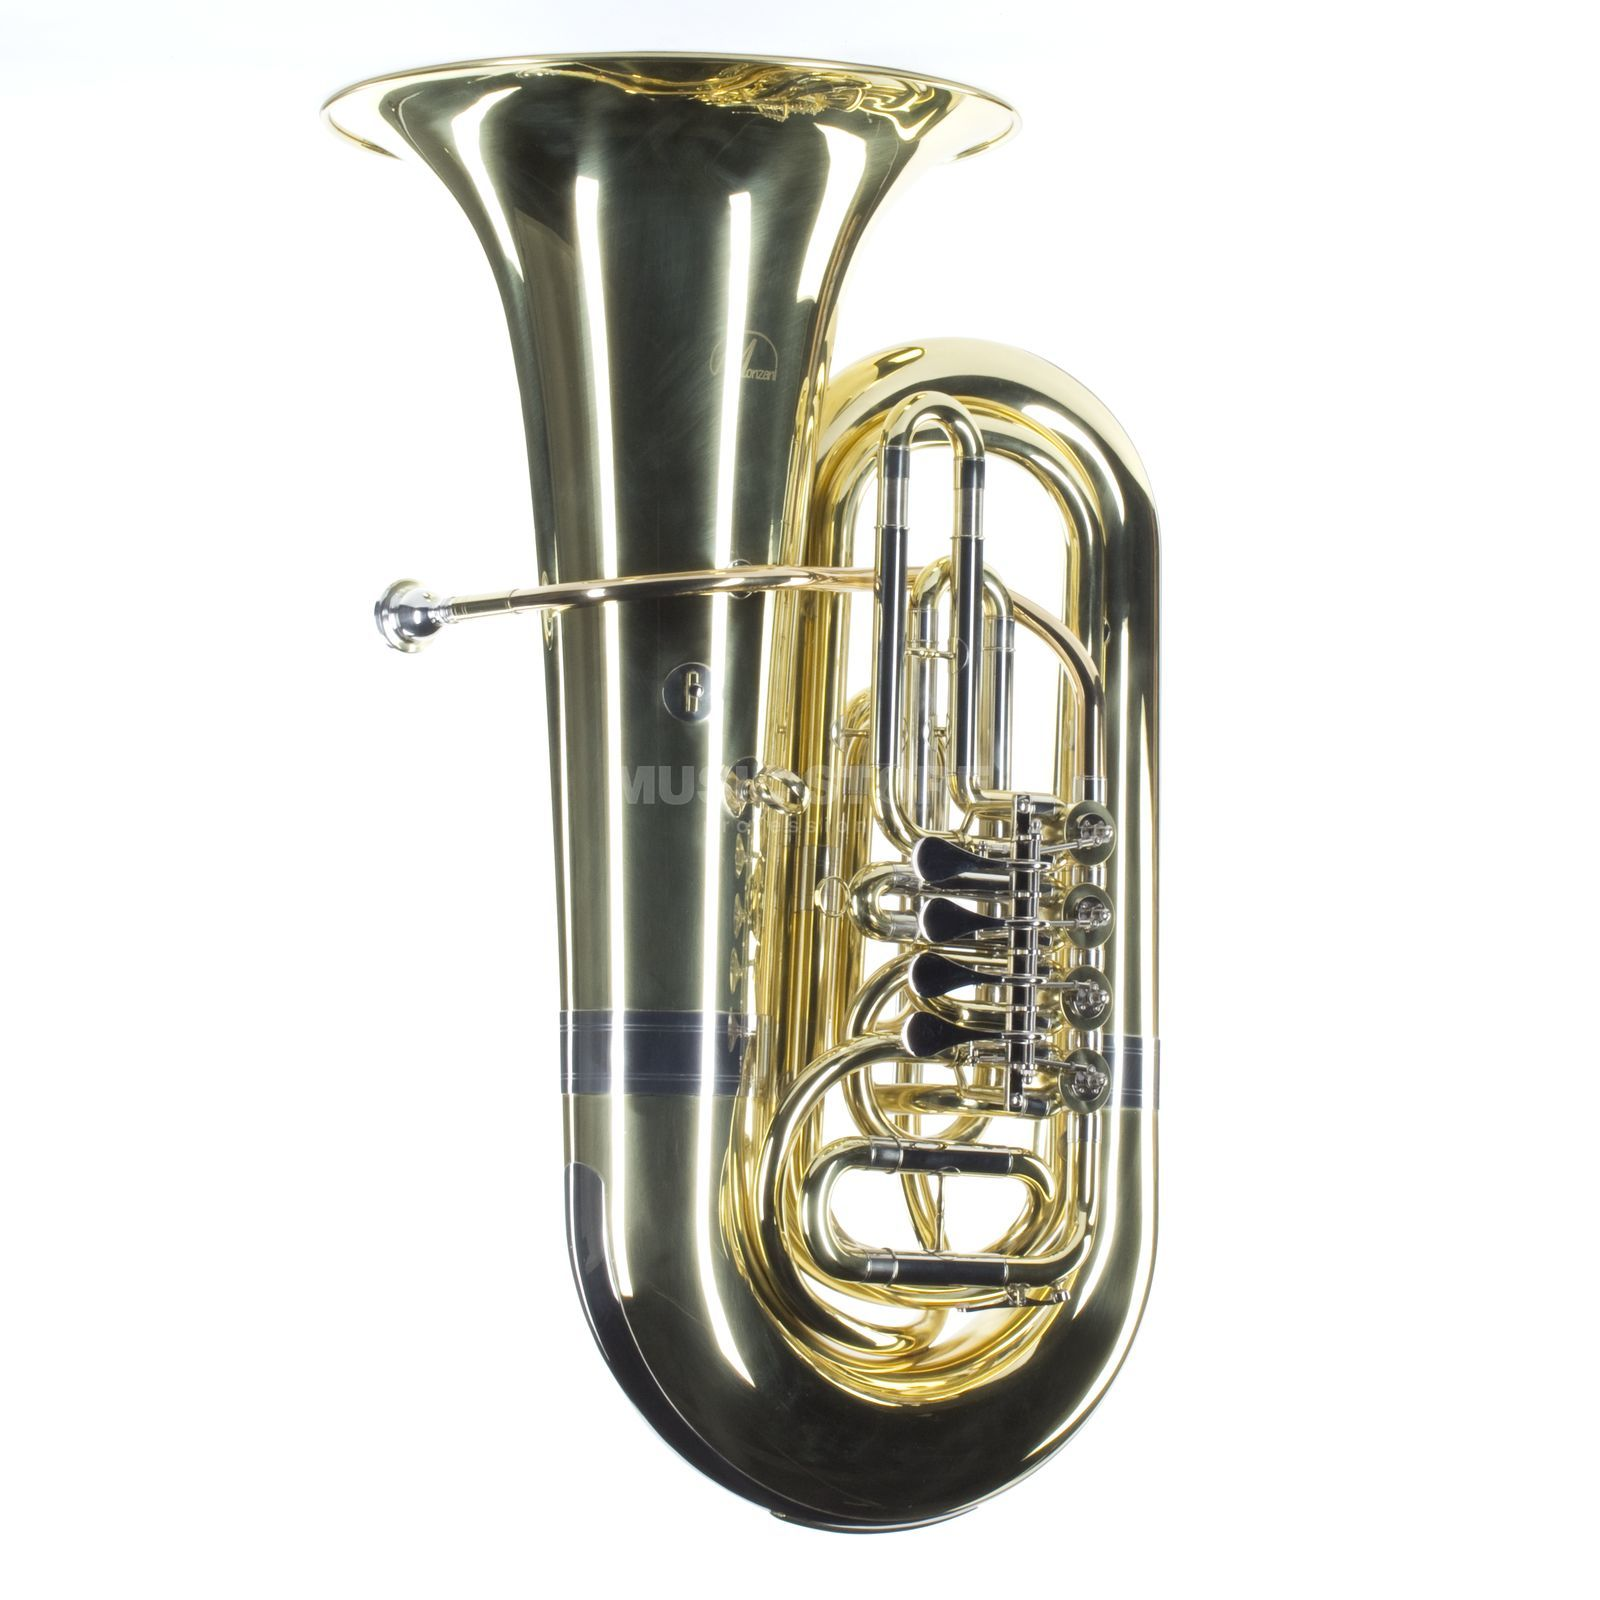 Monzani MZBB-210L Bb-Tuba messing, Lackiert, 4 Ventile Productafbeelding